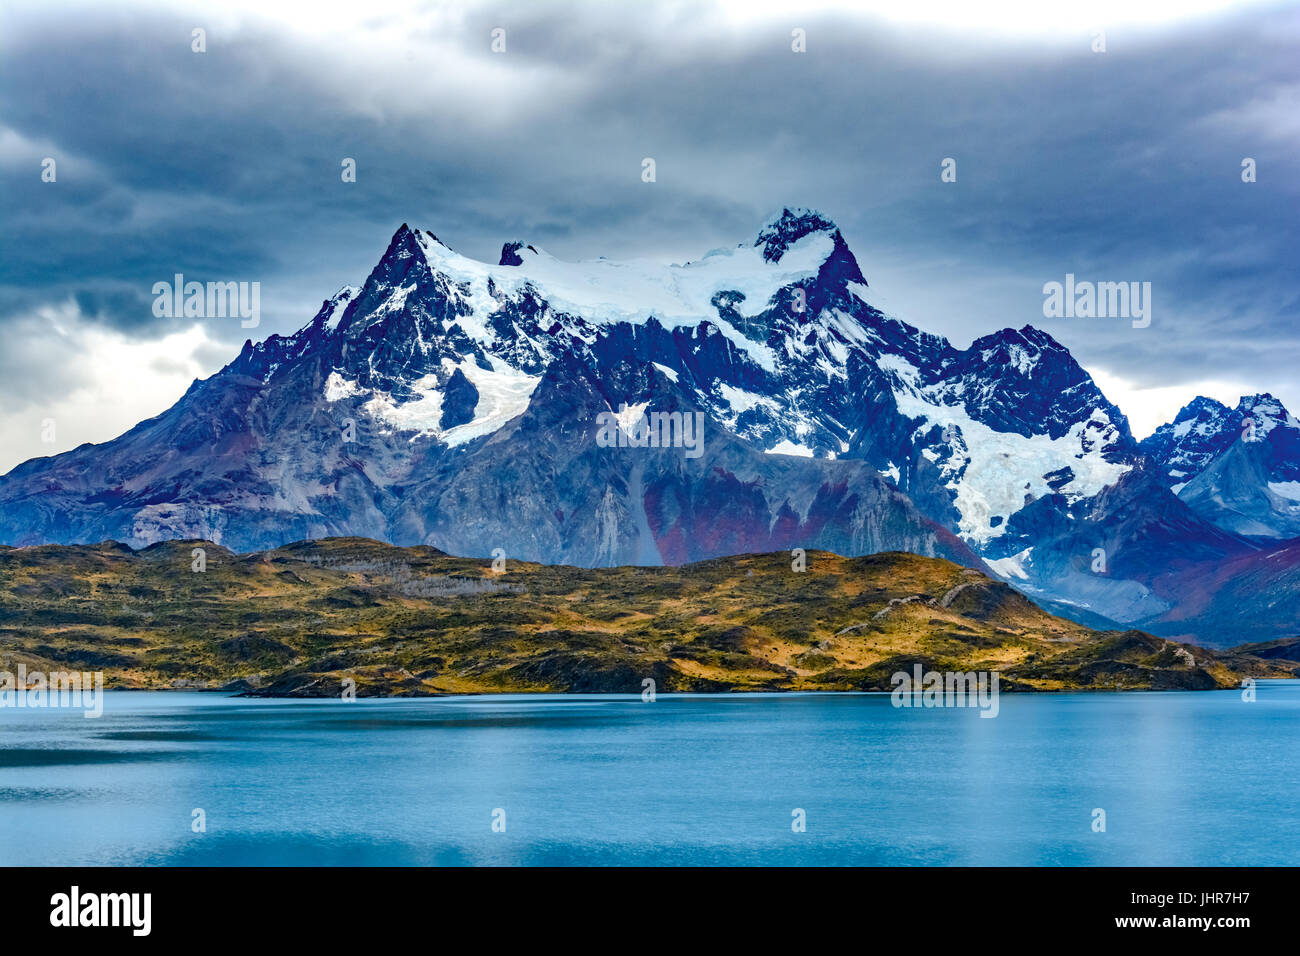 Torres del Paine over the Pehoe lake, Patagonia, Chile - Southern Patagonian Ice Field, Magellanes Region of South - Stock Image